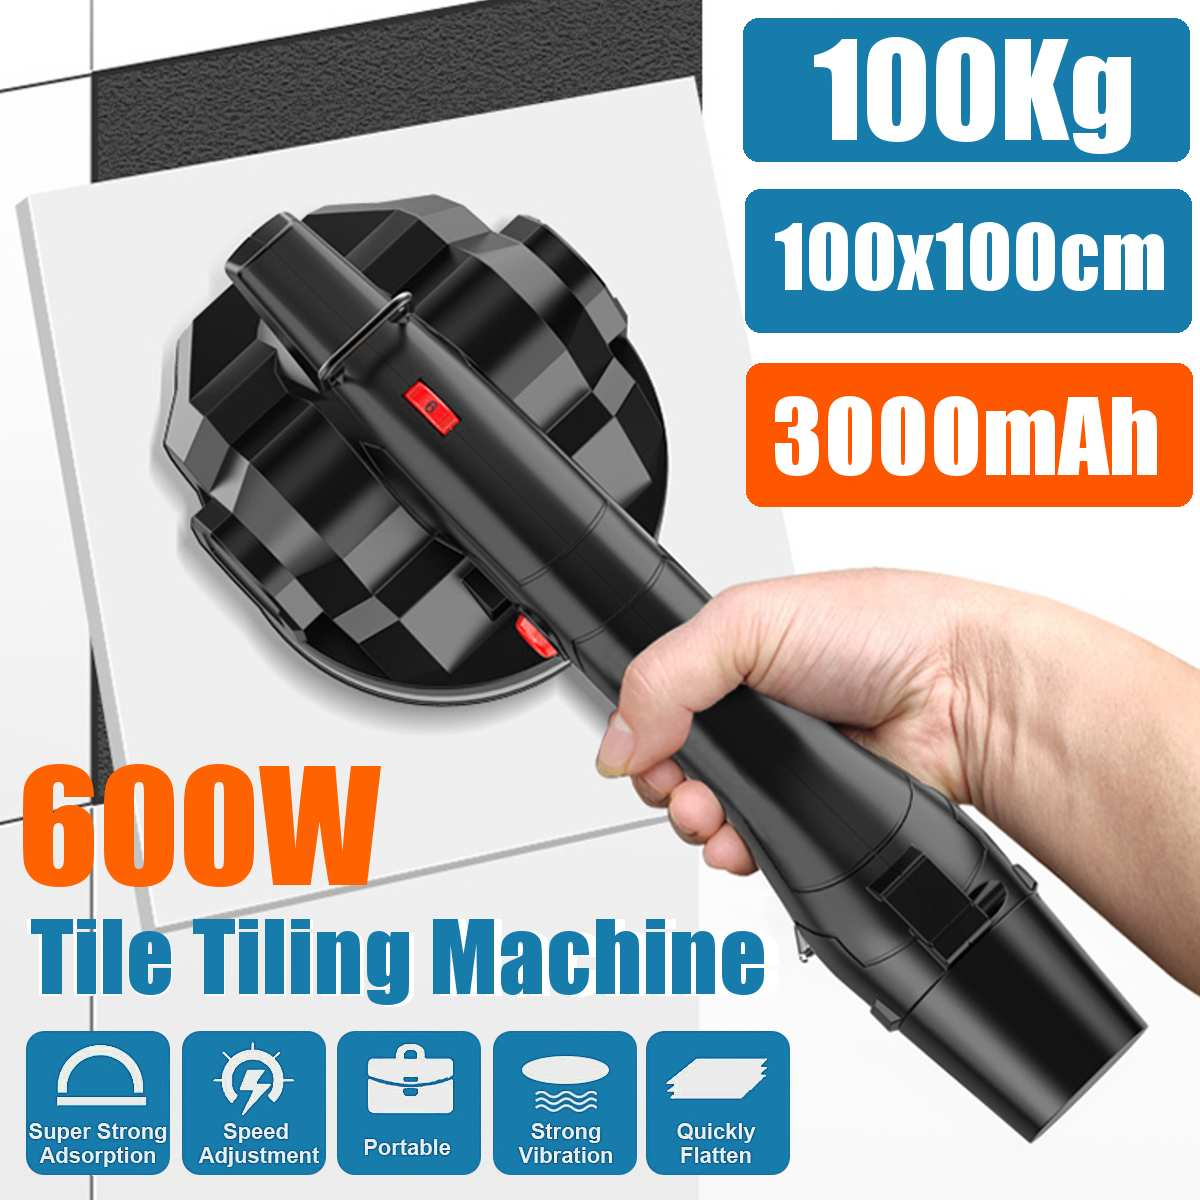 Tile Tilling Vibrator For Tiles 100x100cm Tiling Plastering Machine Laying Tiles+battery Automatic Floor Vibrator Leveling Tool